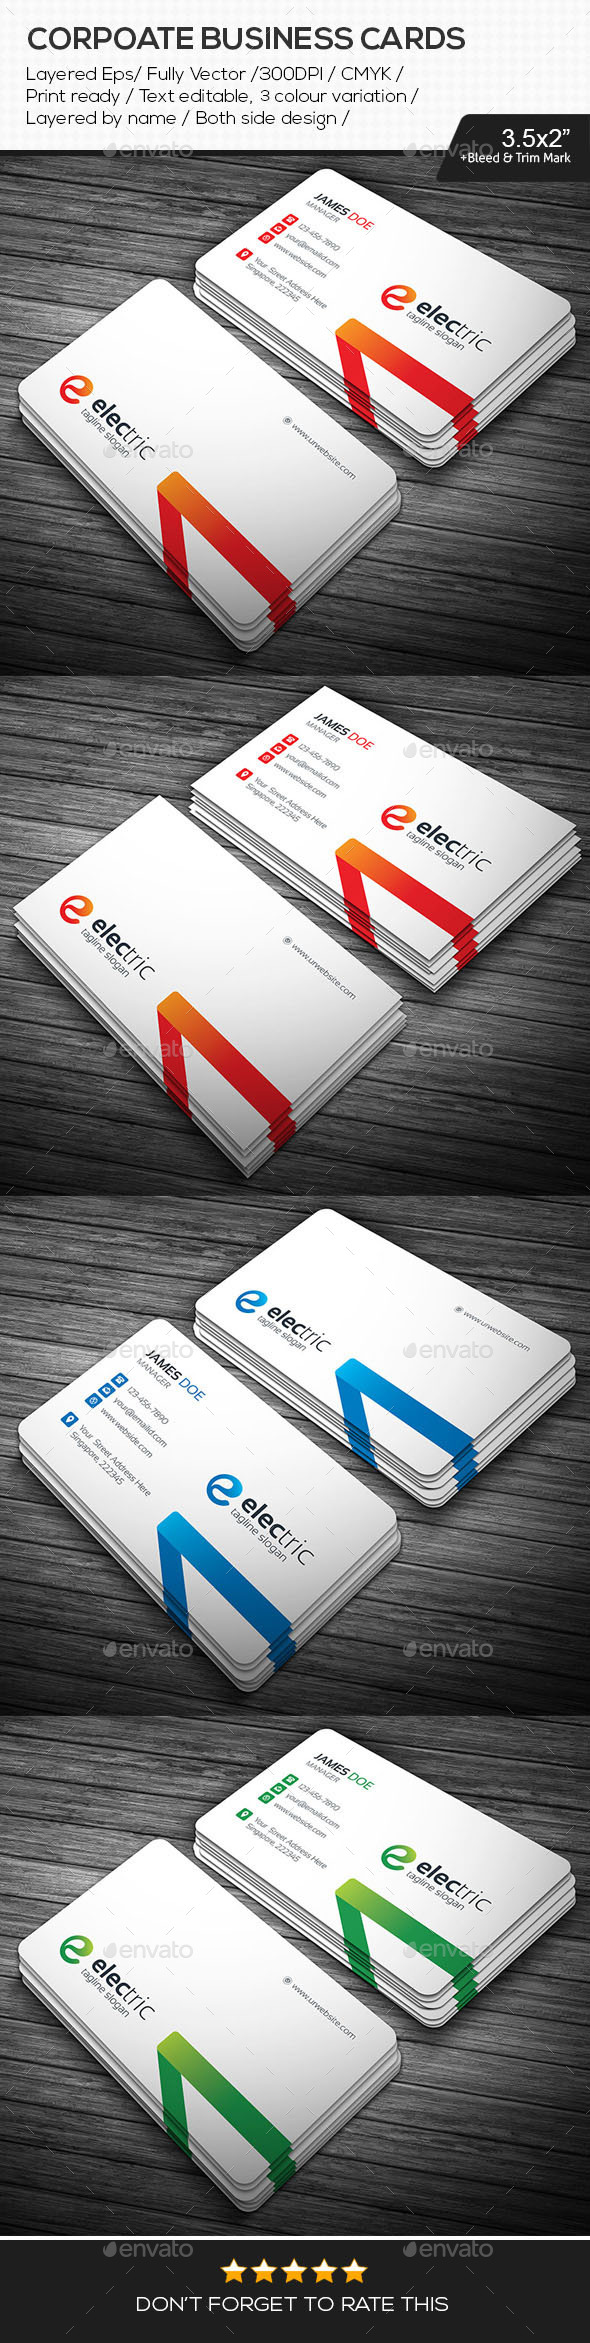 GraphicRiver Electric Corporate Business Cards 11040613